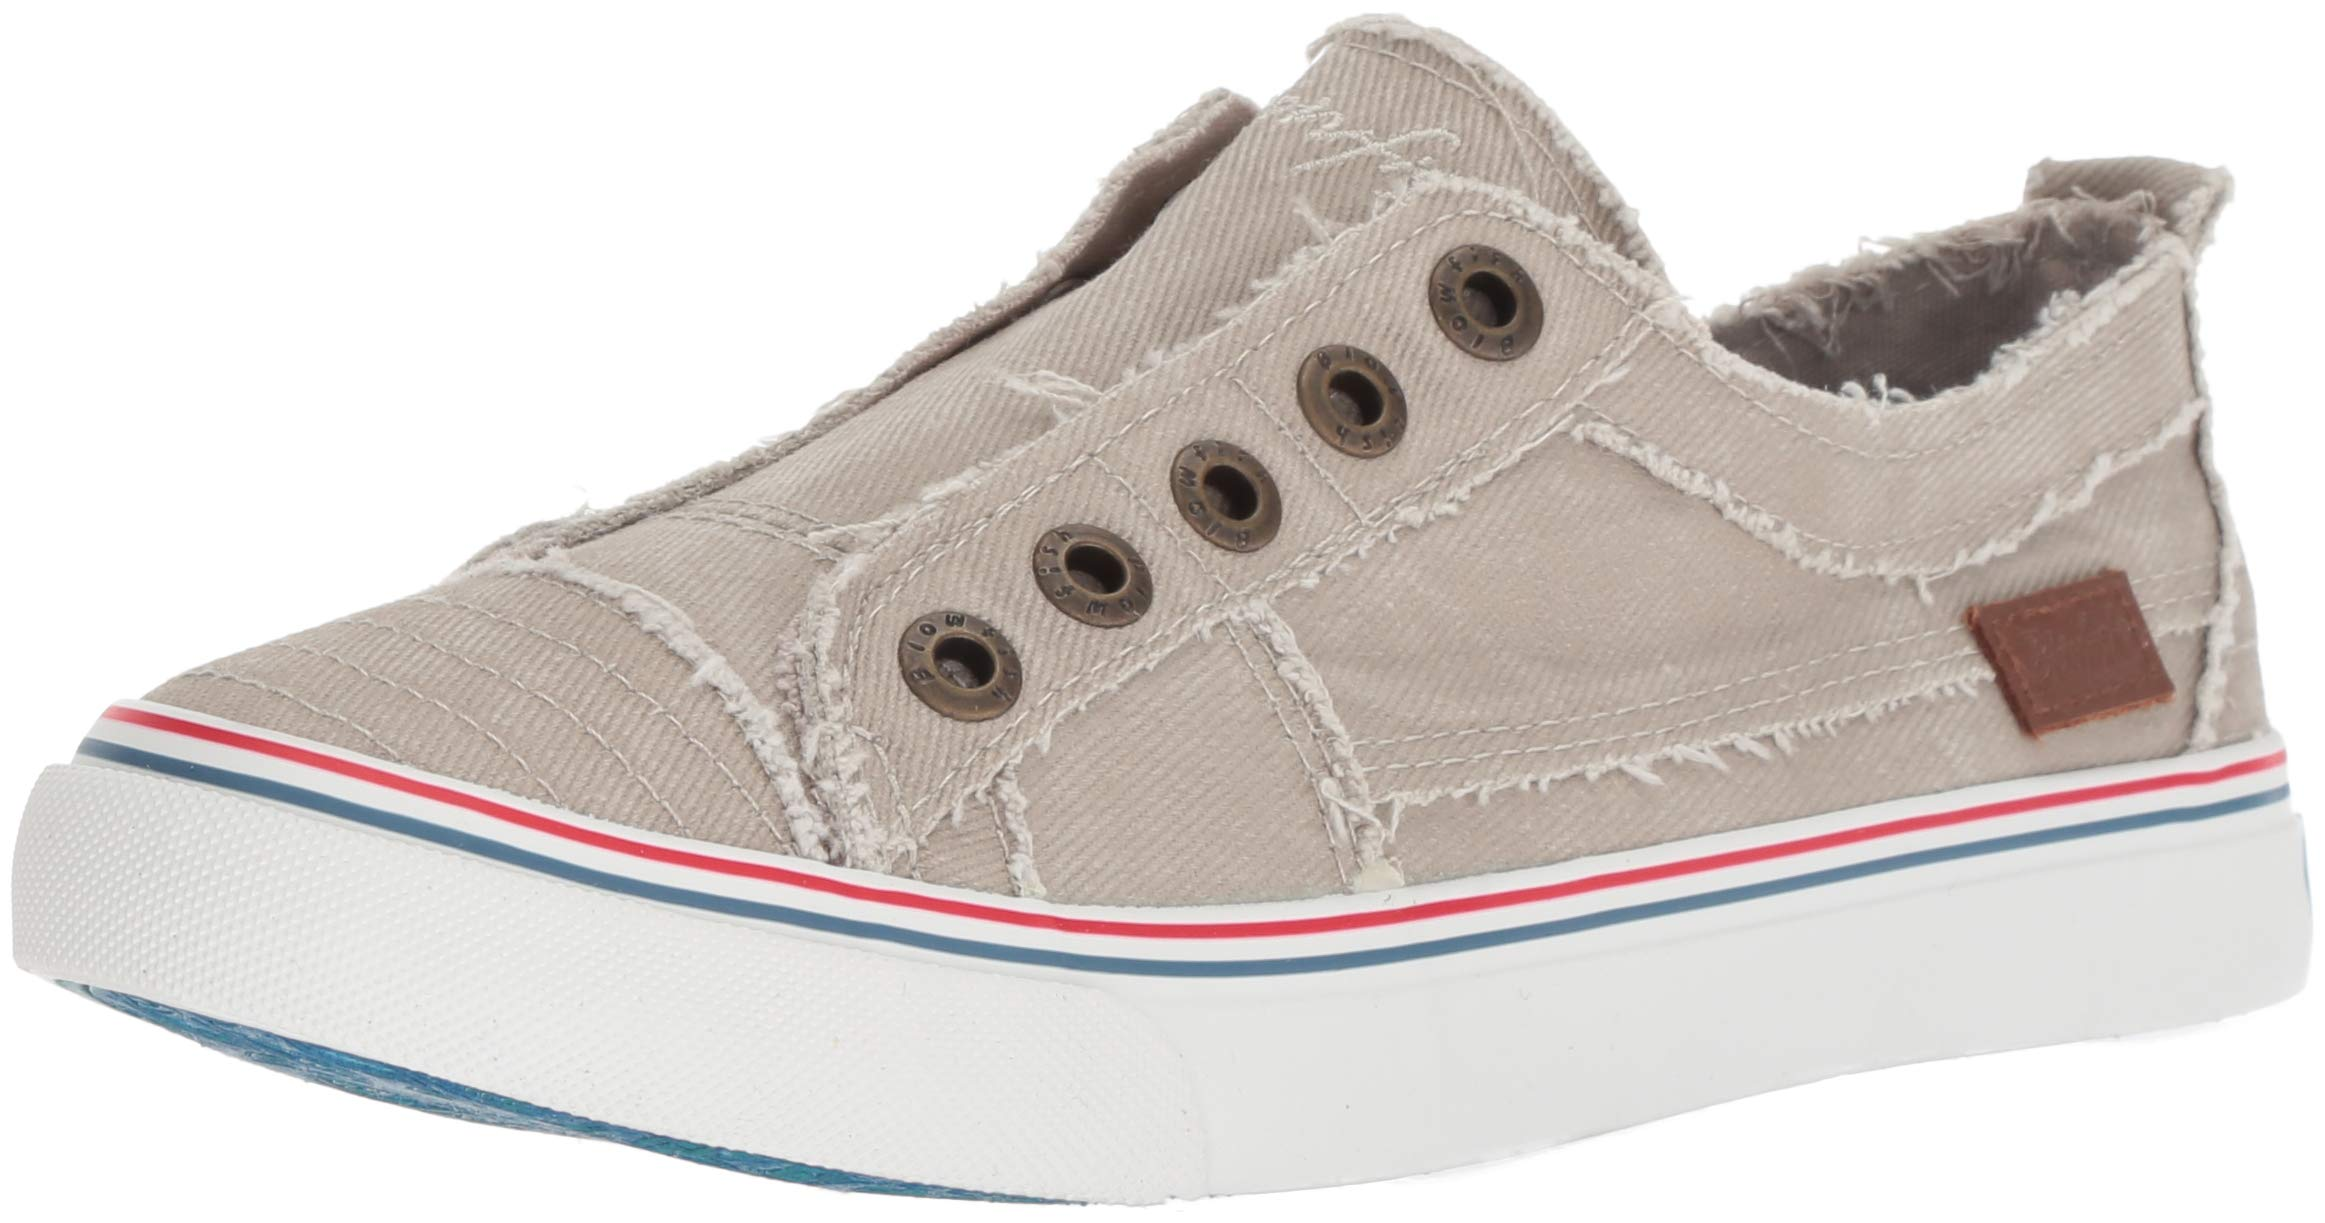 Blowfish Women's Play Sneaker, Birch Hipster Smoked Twill, 7.5 M US